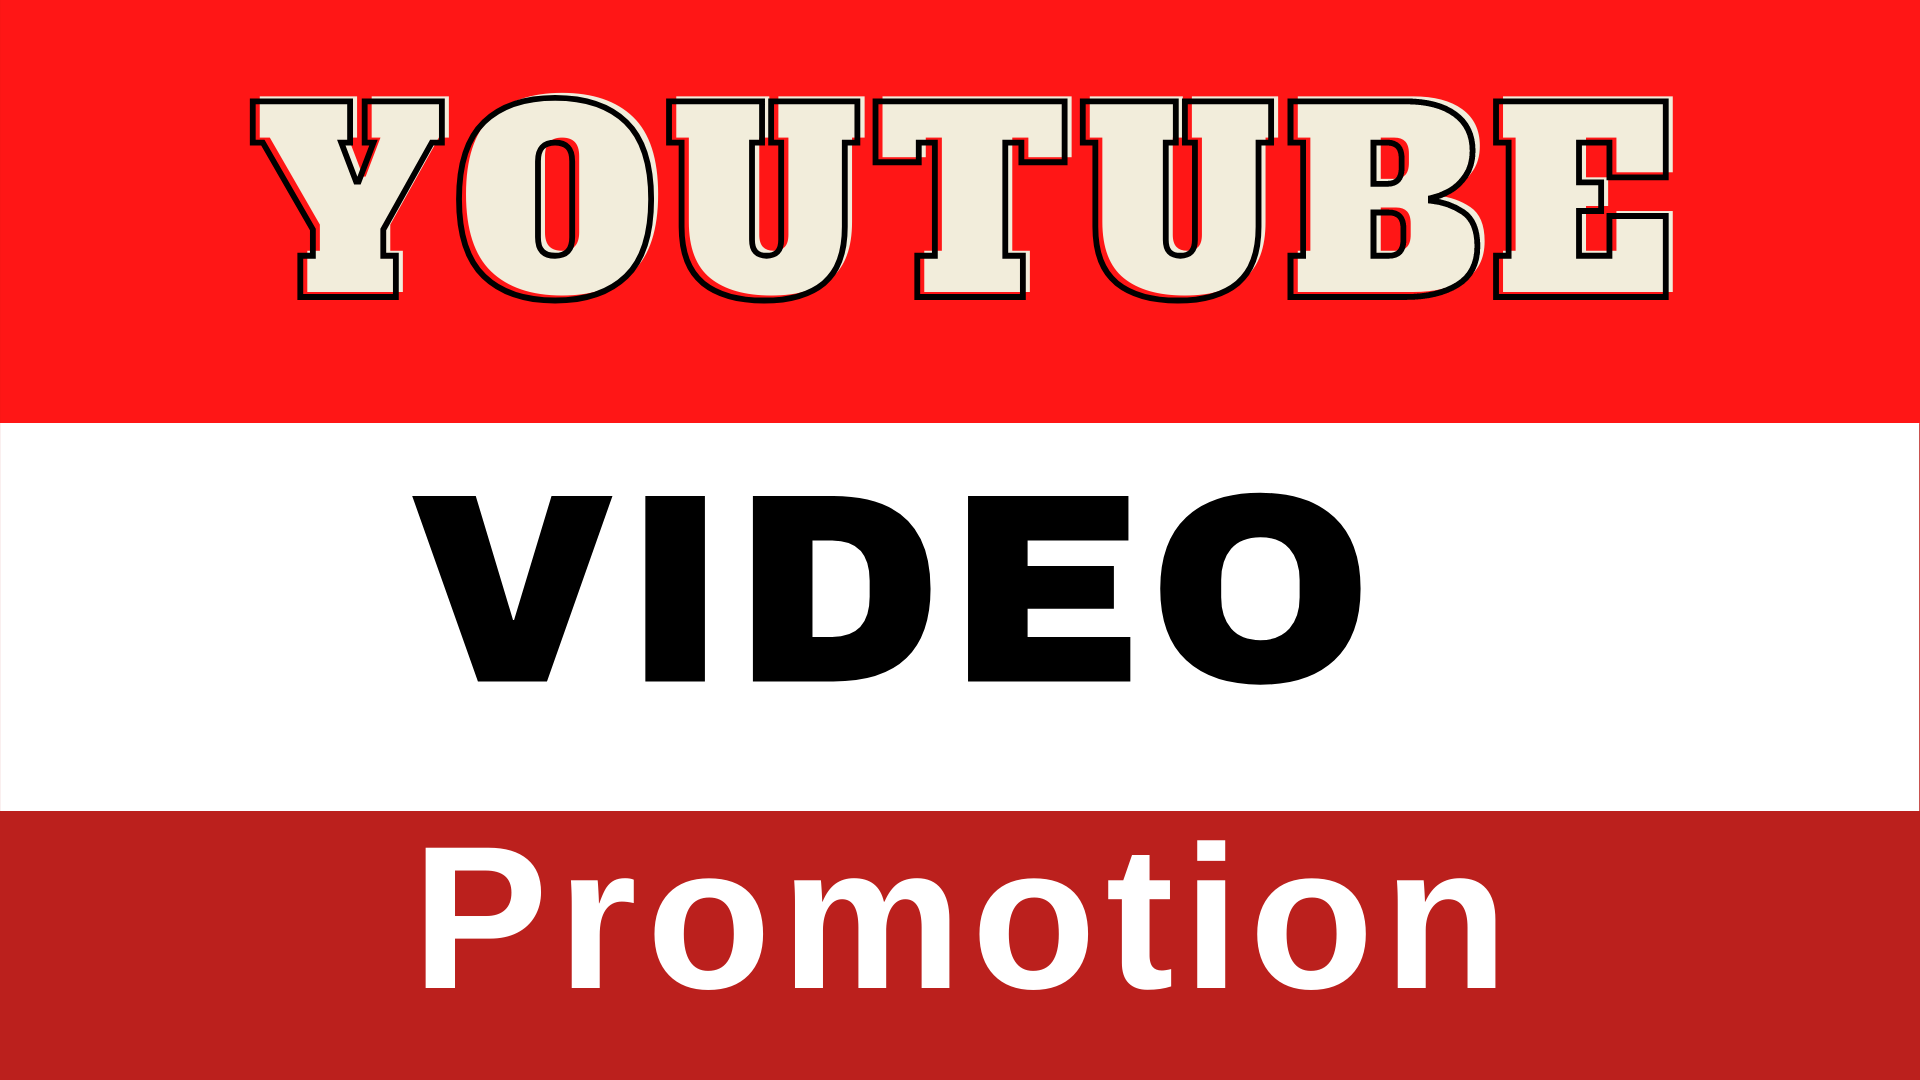 Real organic YouTube marketing and promoting